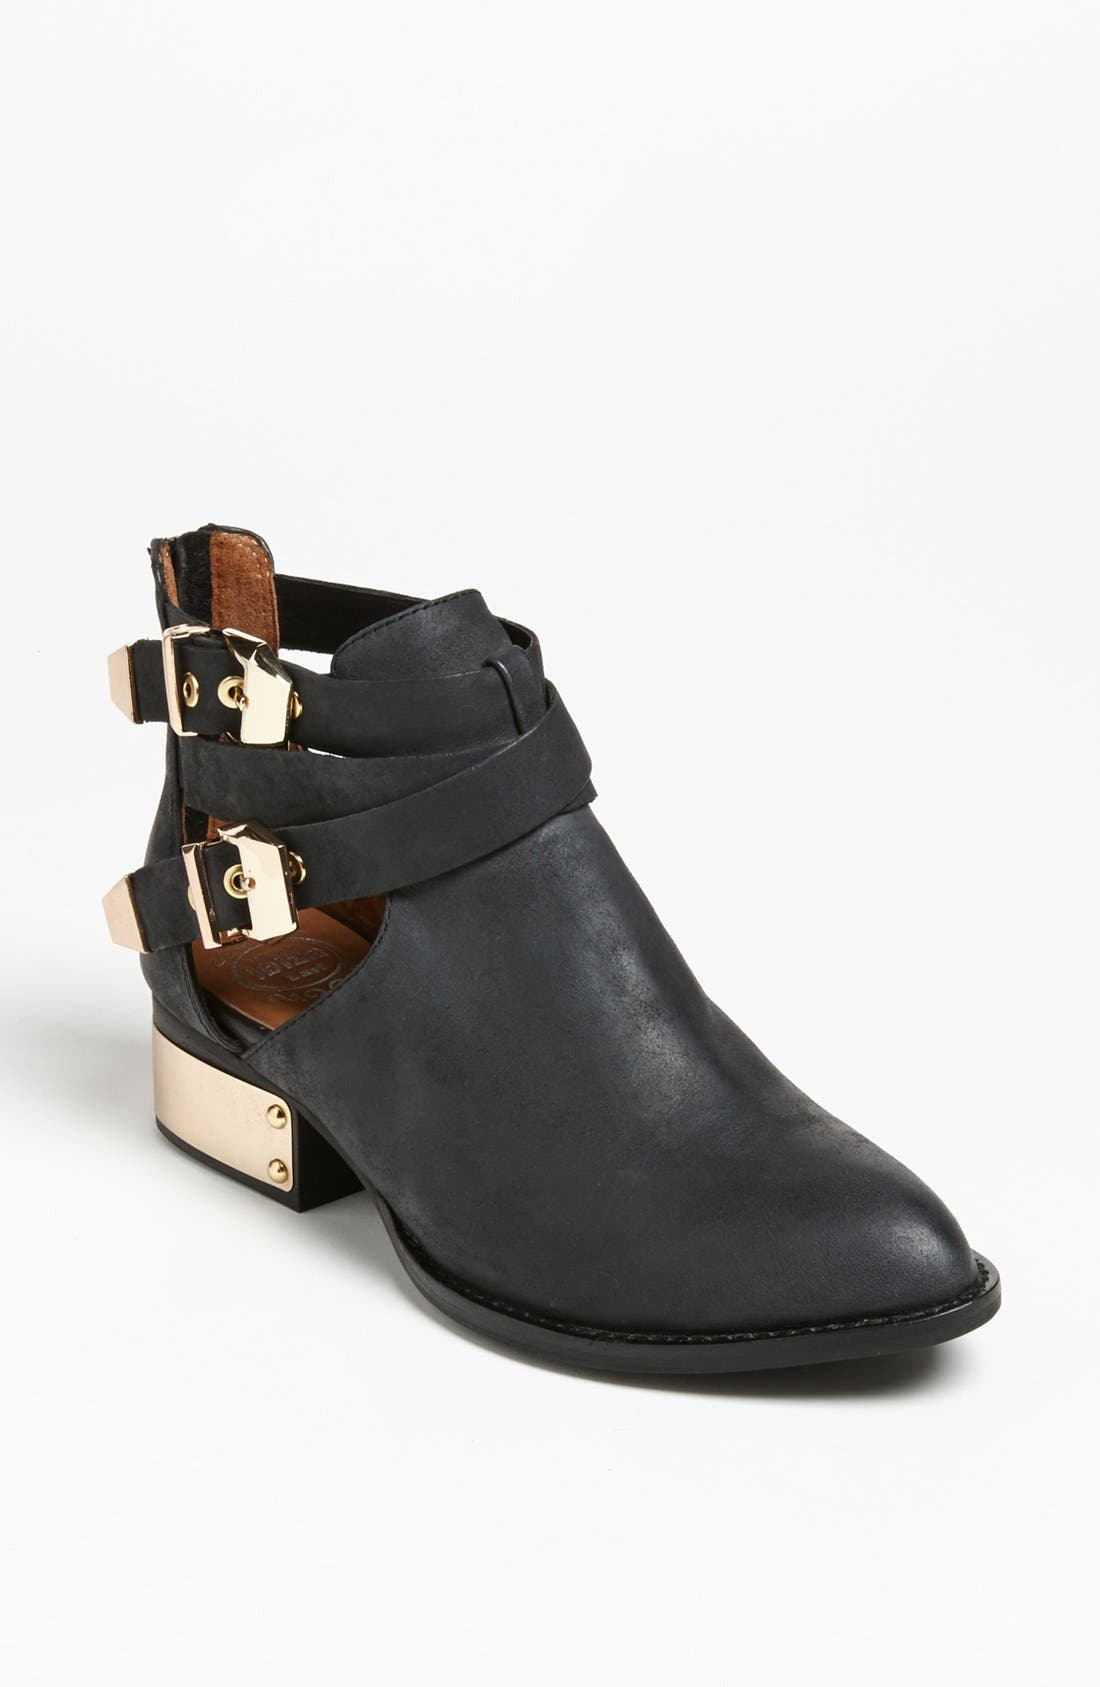 JEFFREY CAMPBELL 'Everly' Bootie, Main, color, 002